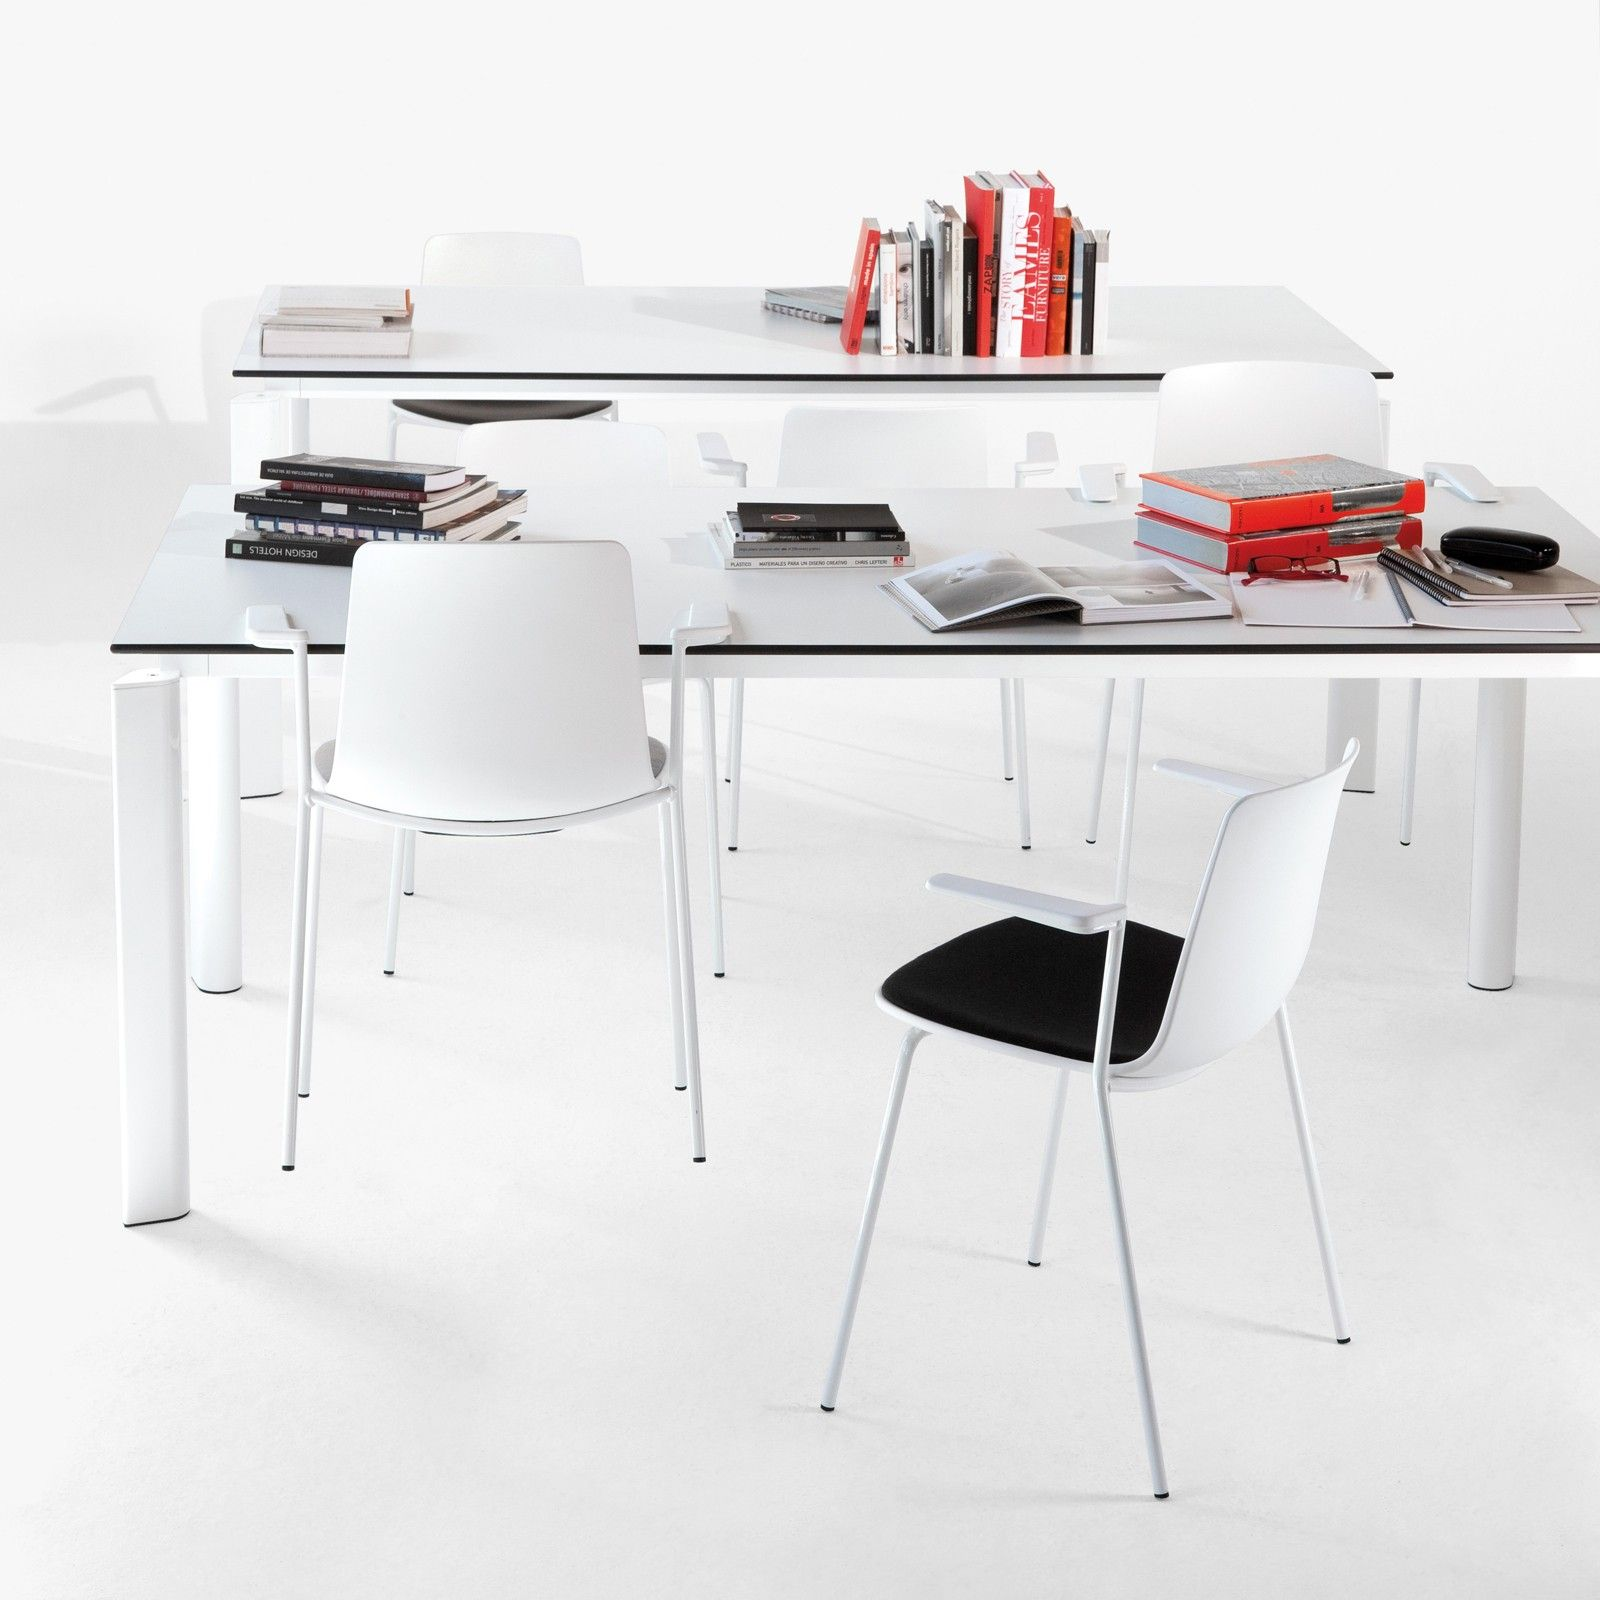 Lottus Seating Collection Designed By Lievore Altherr Molina For Enea |  Education Design, Office Design